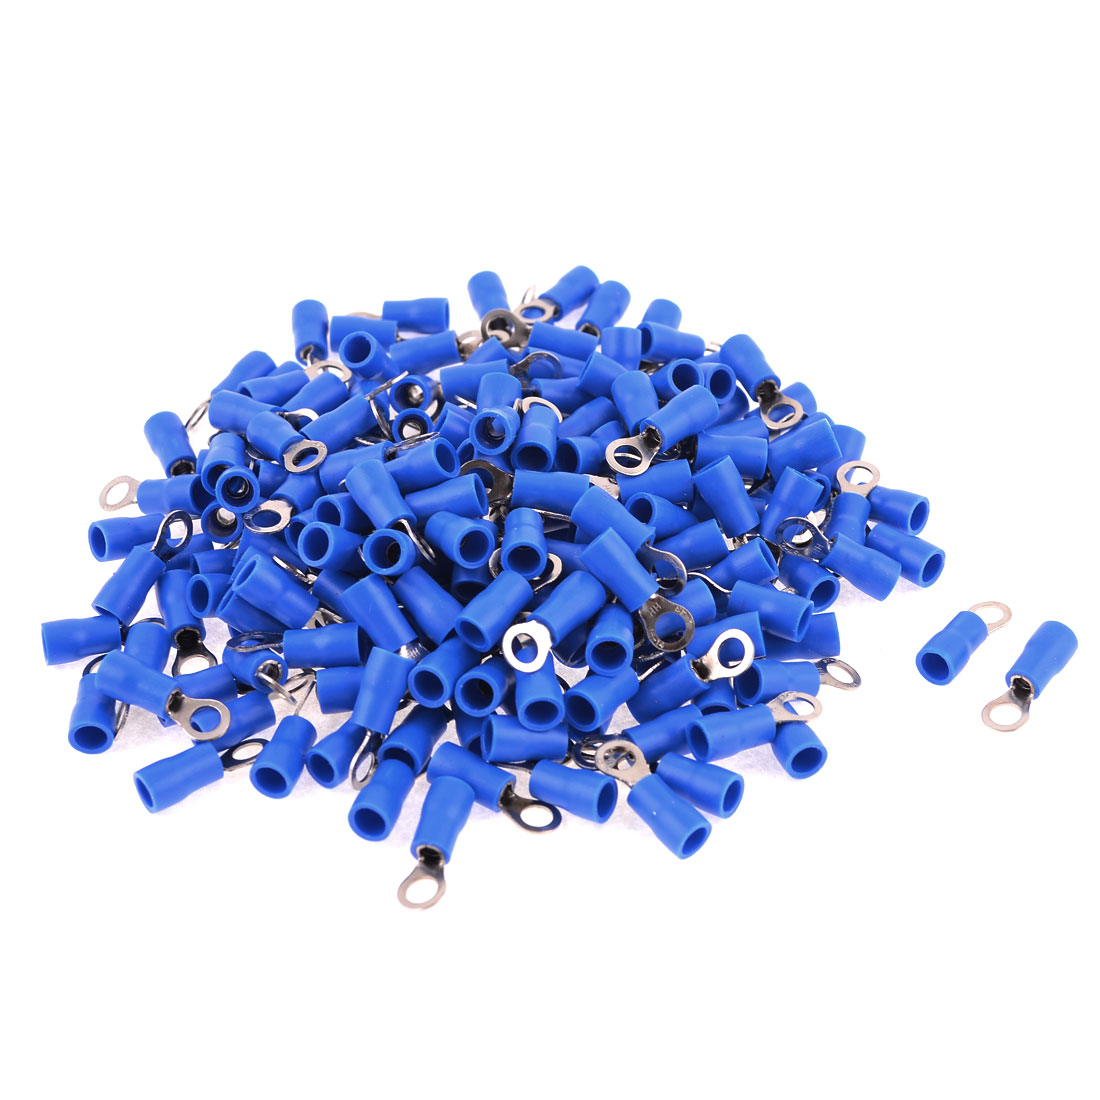 200 Pcs RV2-4 AWG 16-14 Blue PVC Cap Non Insulated Ring Terminals Connector